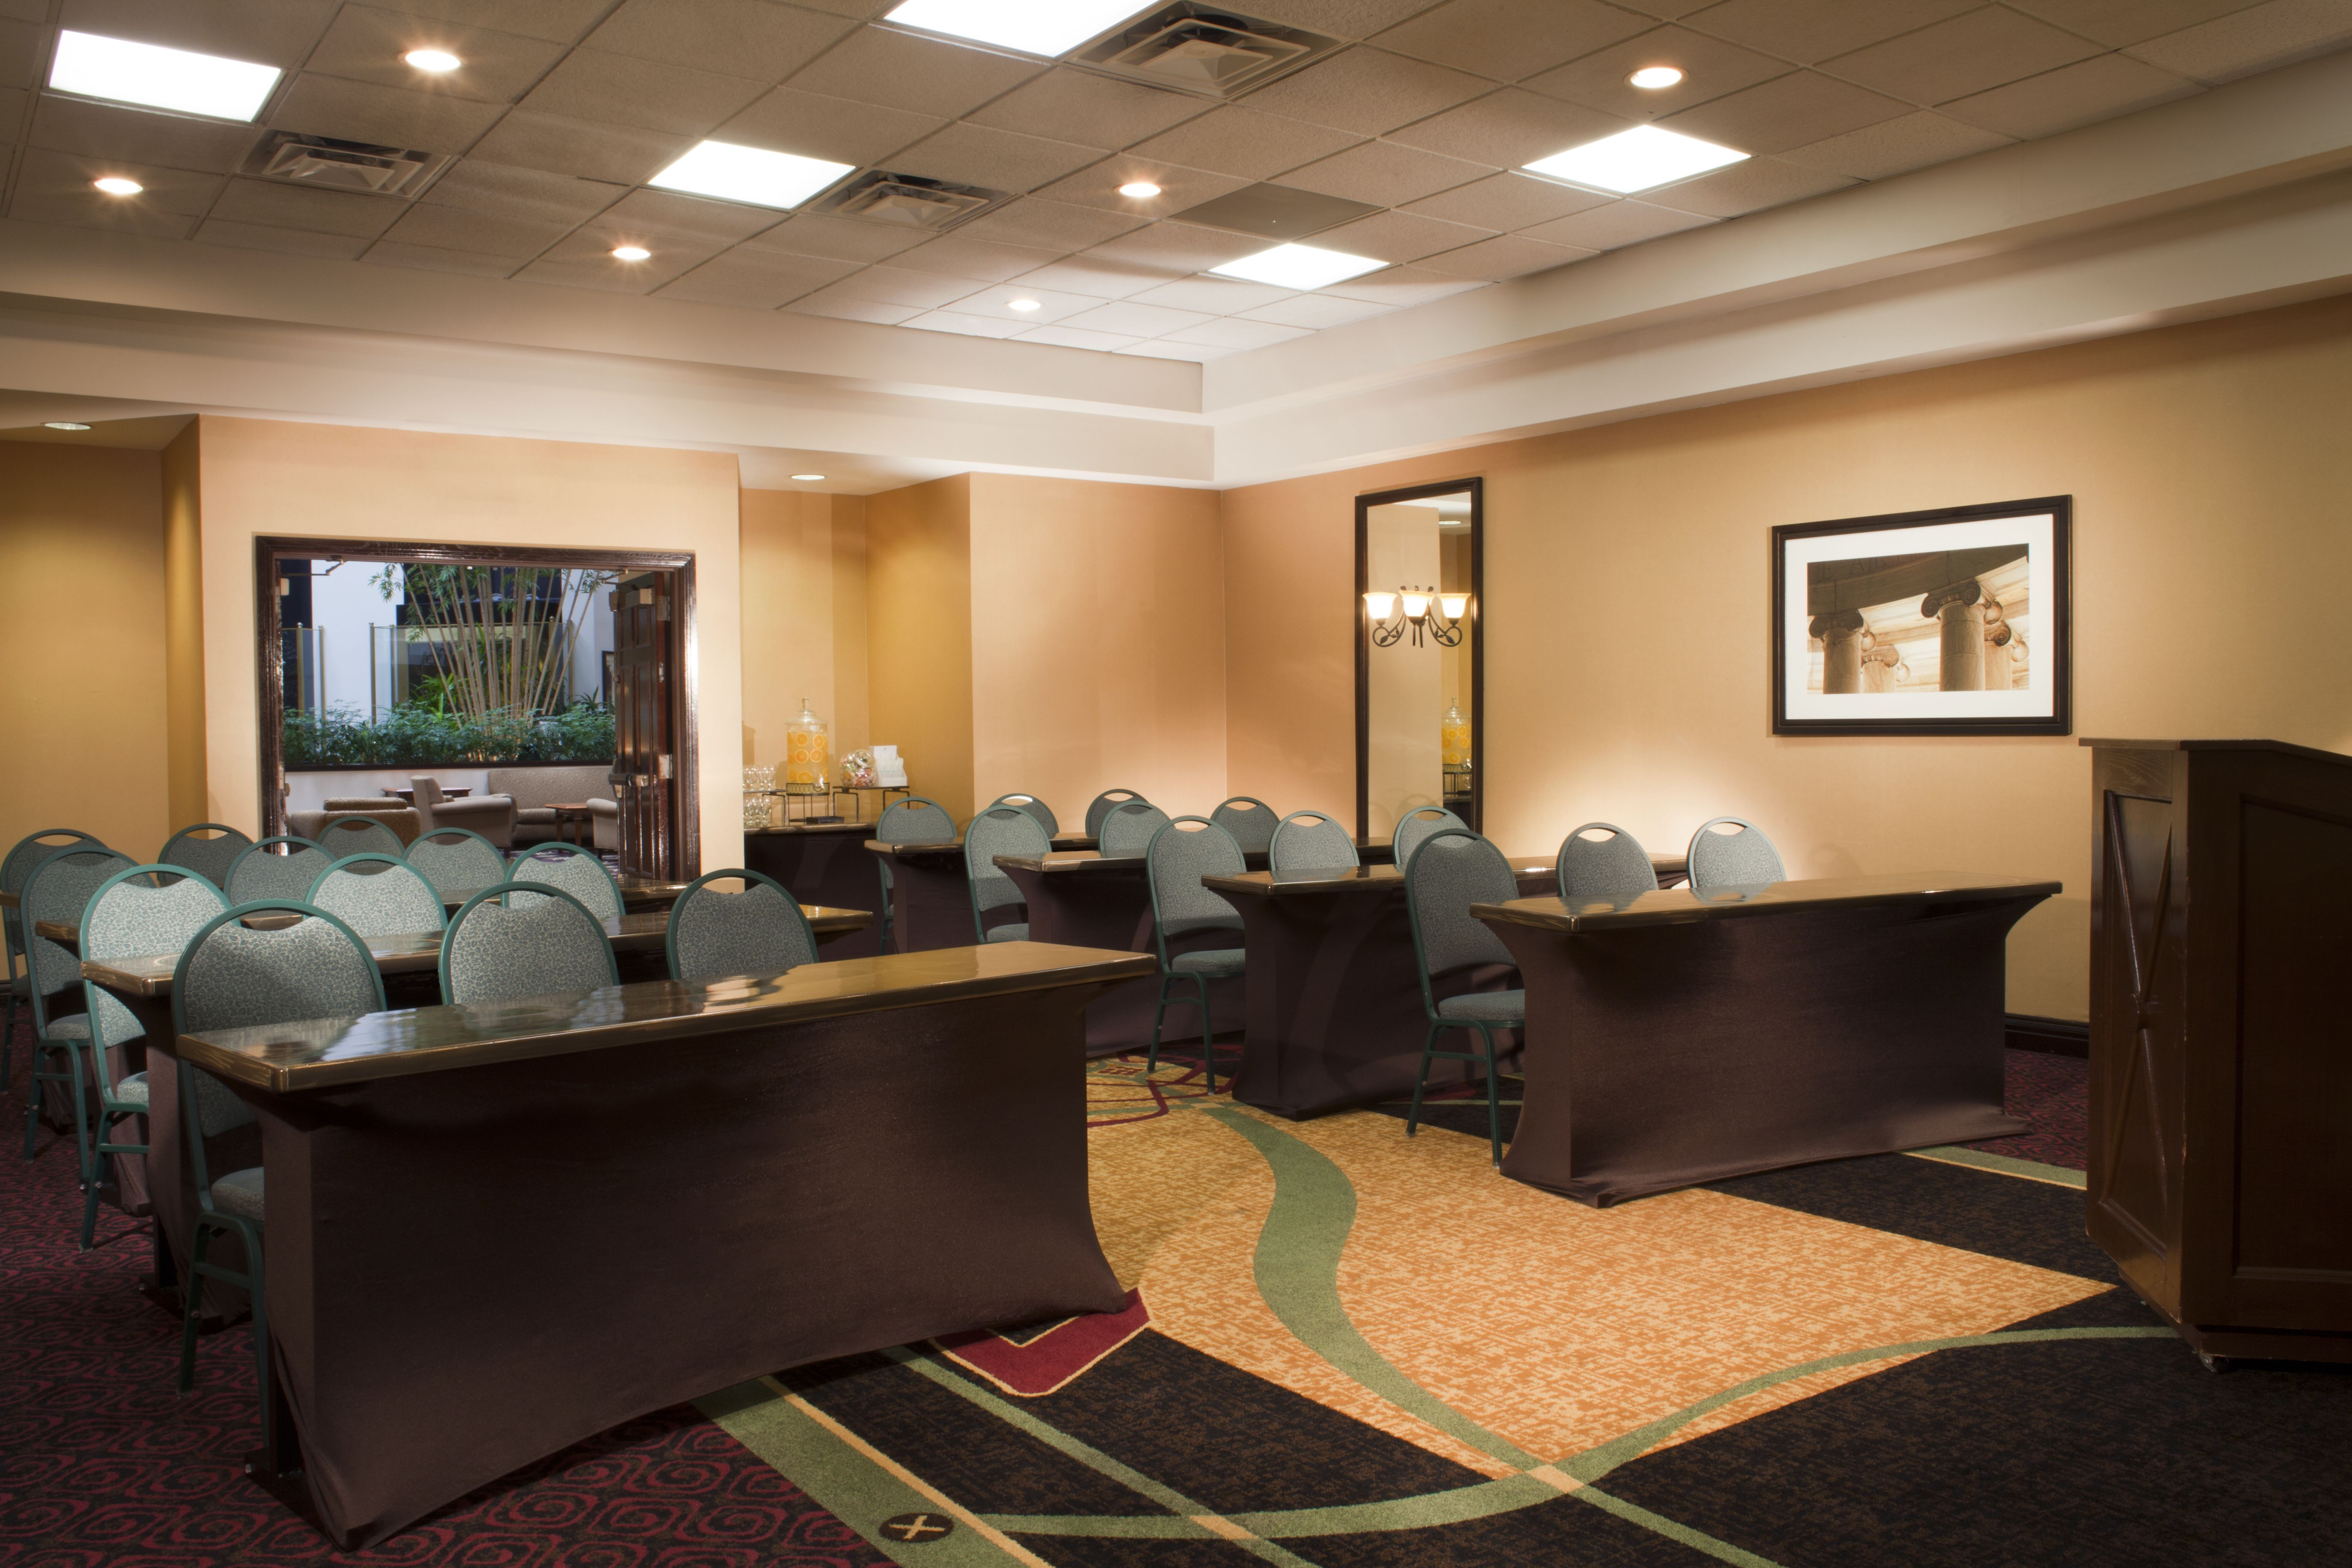 One of our meeting room.  To plan your next event go to:  http://embassysuites3.hilton.com/en/hotels/virginia/embassy-suites-dulles-airport-WASDAES/event/index.html